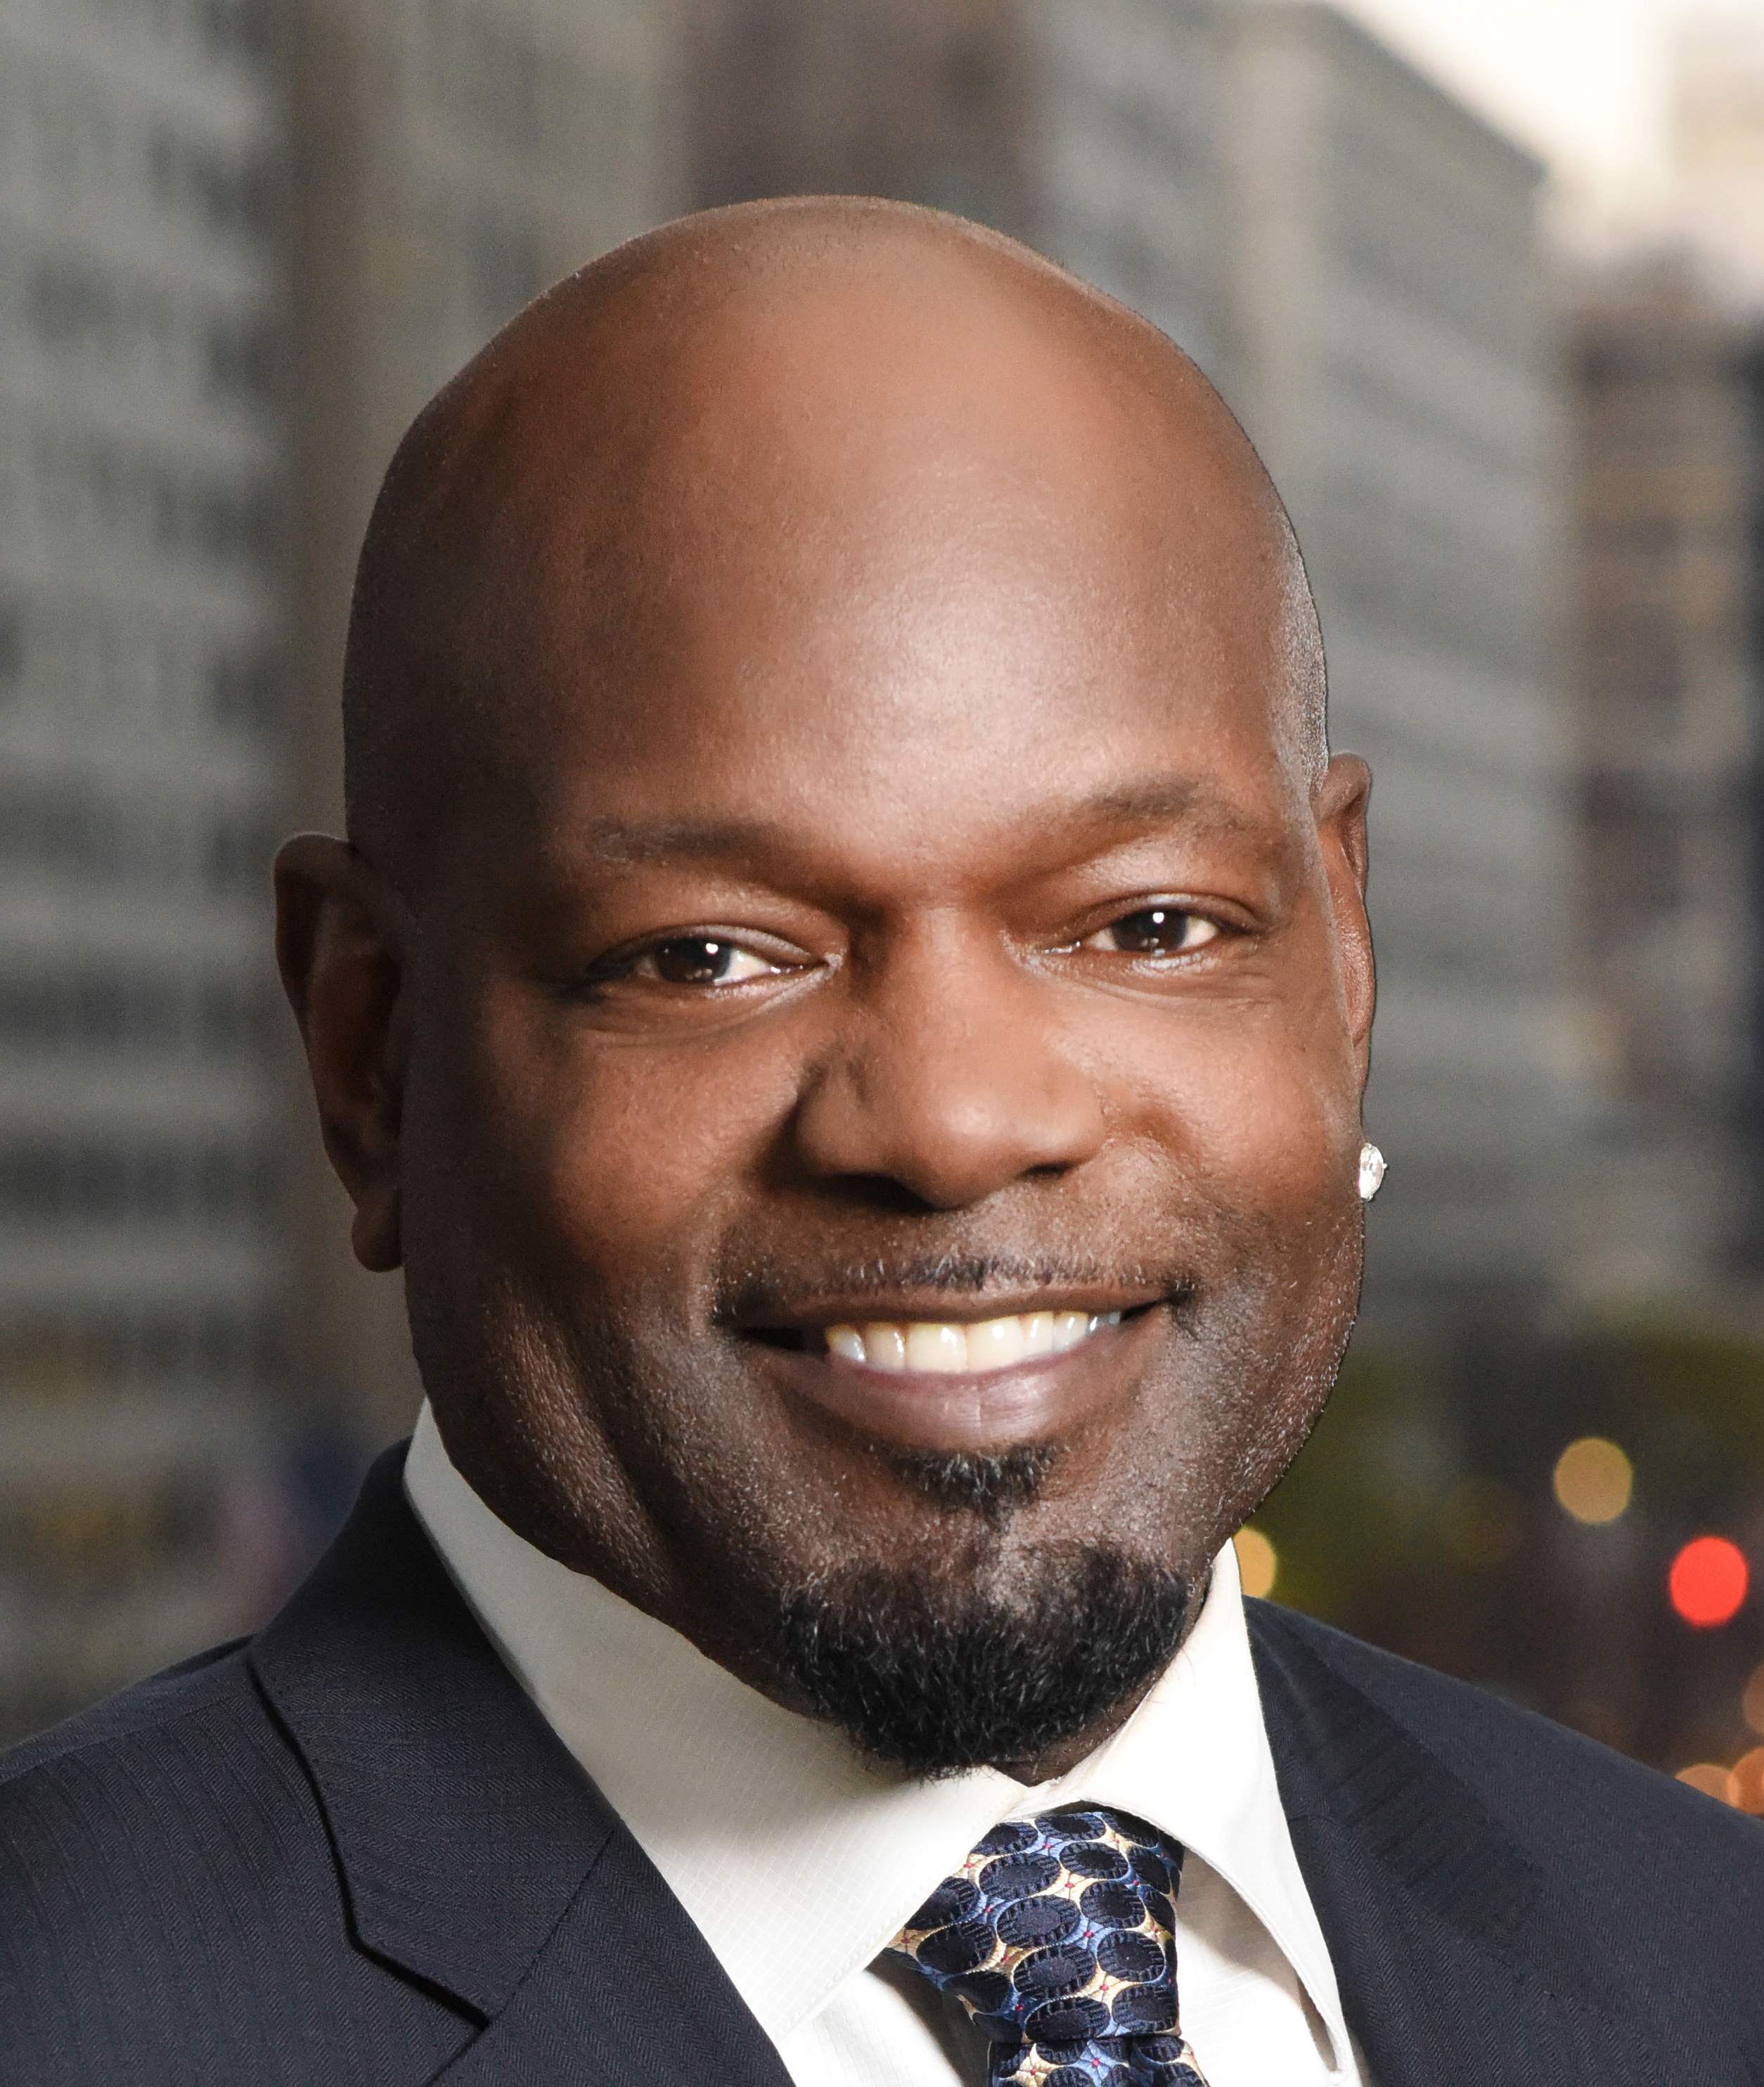 Dallas Cowboys Emmitt Smith will take the stage at RootsTech 2020 in Salt Lake City, Utah, to share his journey of personal discovery.